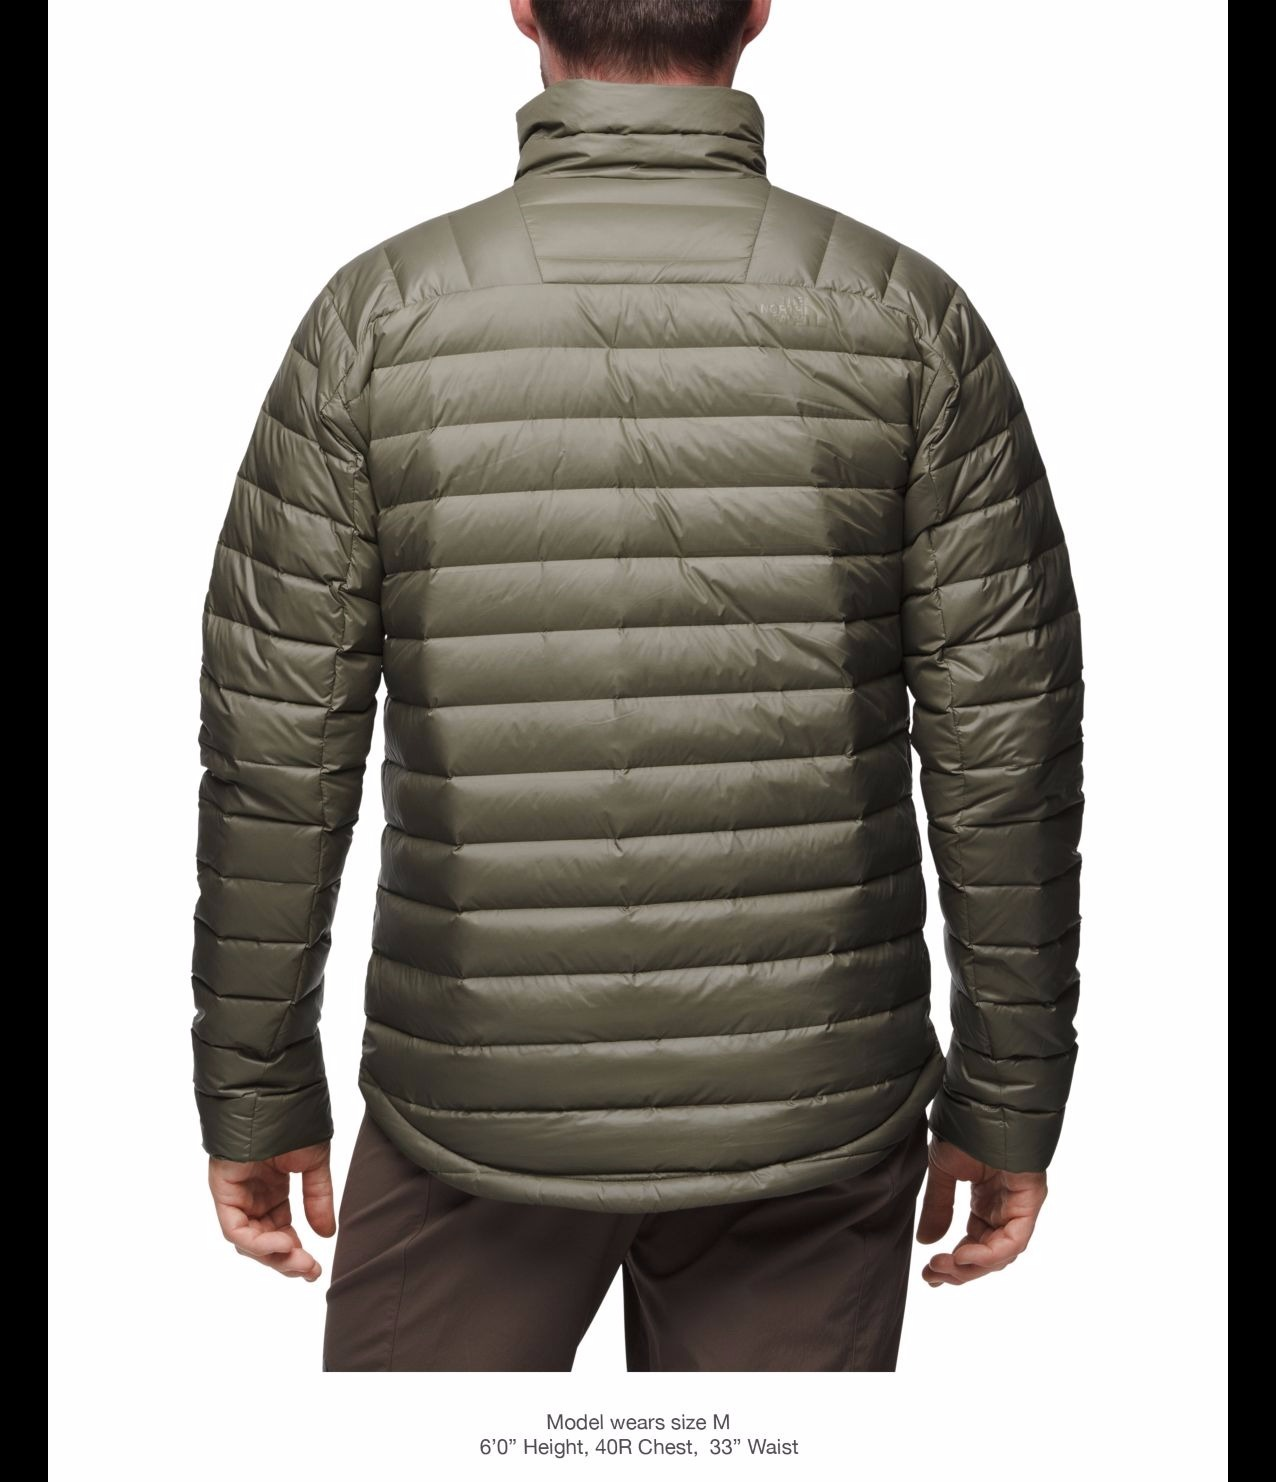 関税・送料込/THE NORTH FACE MORPH DOWN JACKET ☆